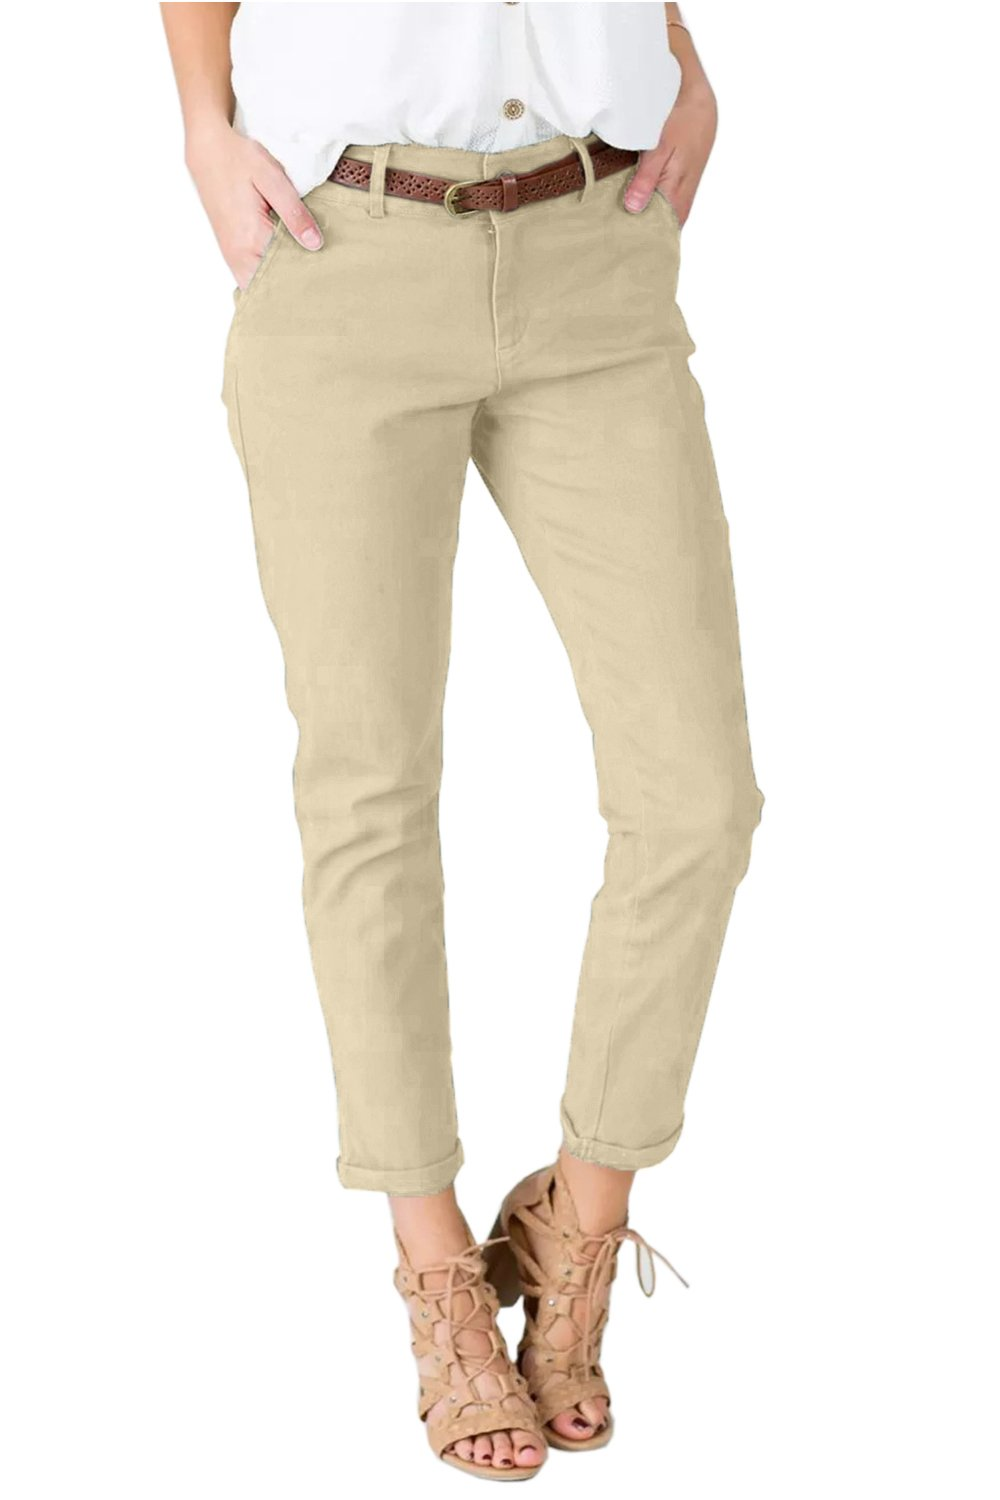 Women's Slimming Straight Leg Pants Casual Cropped Ankle  Trousers 3